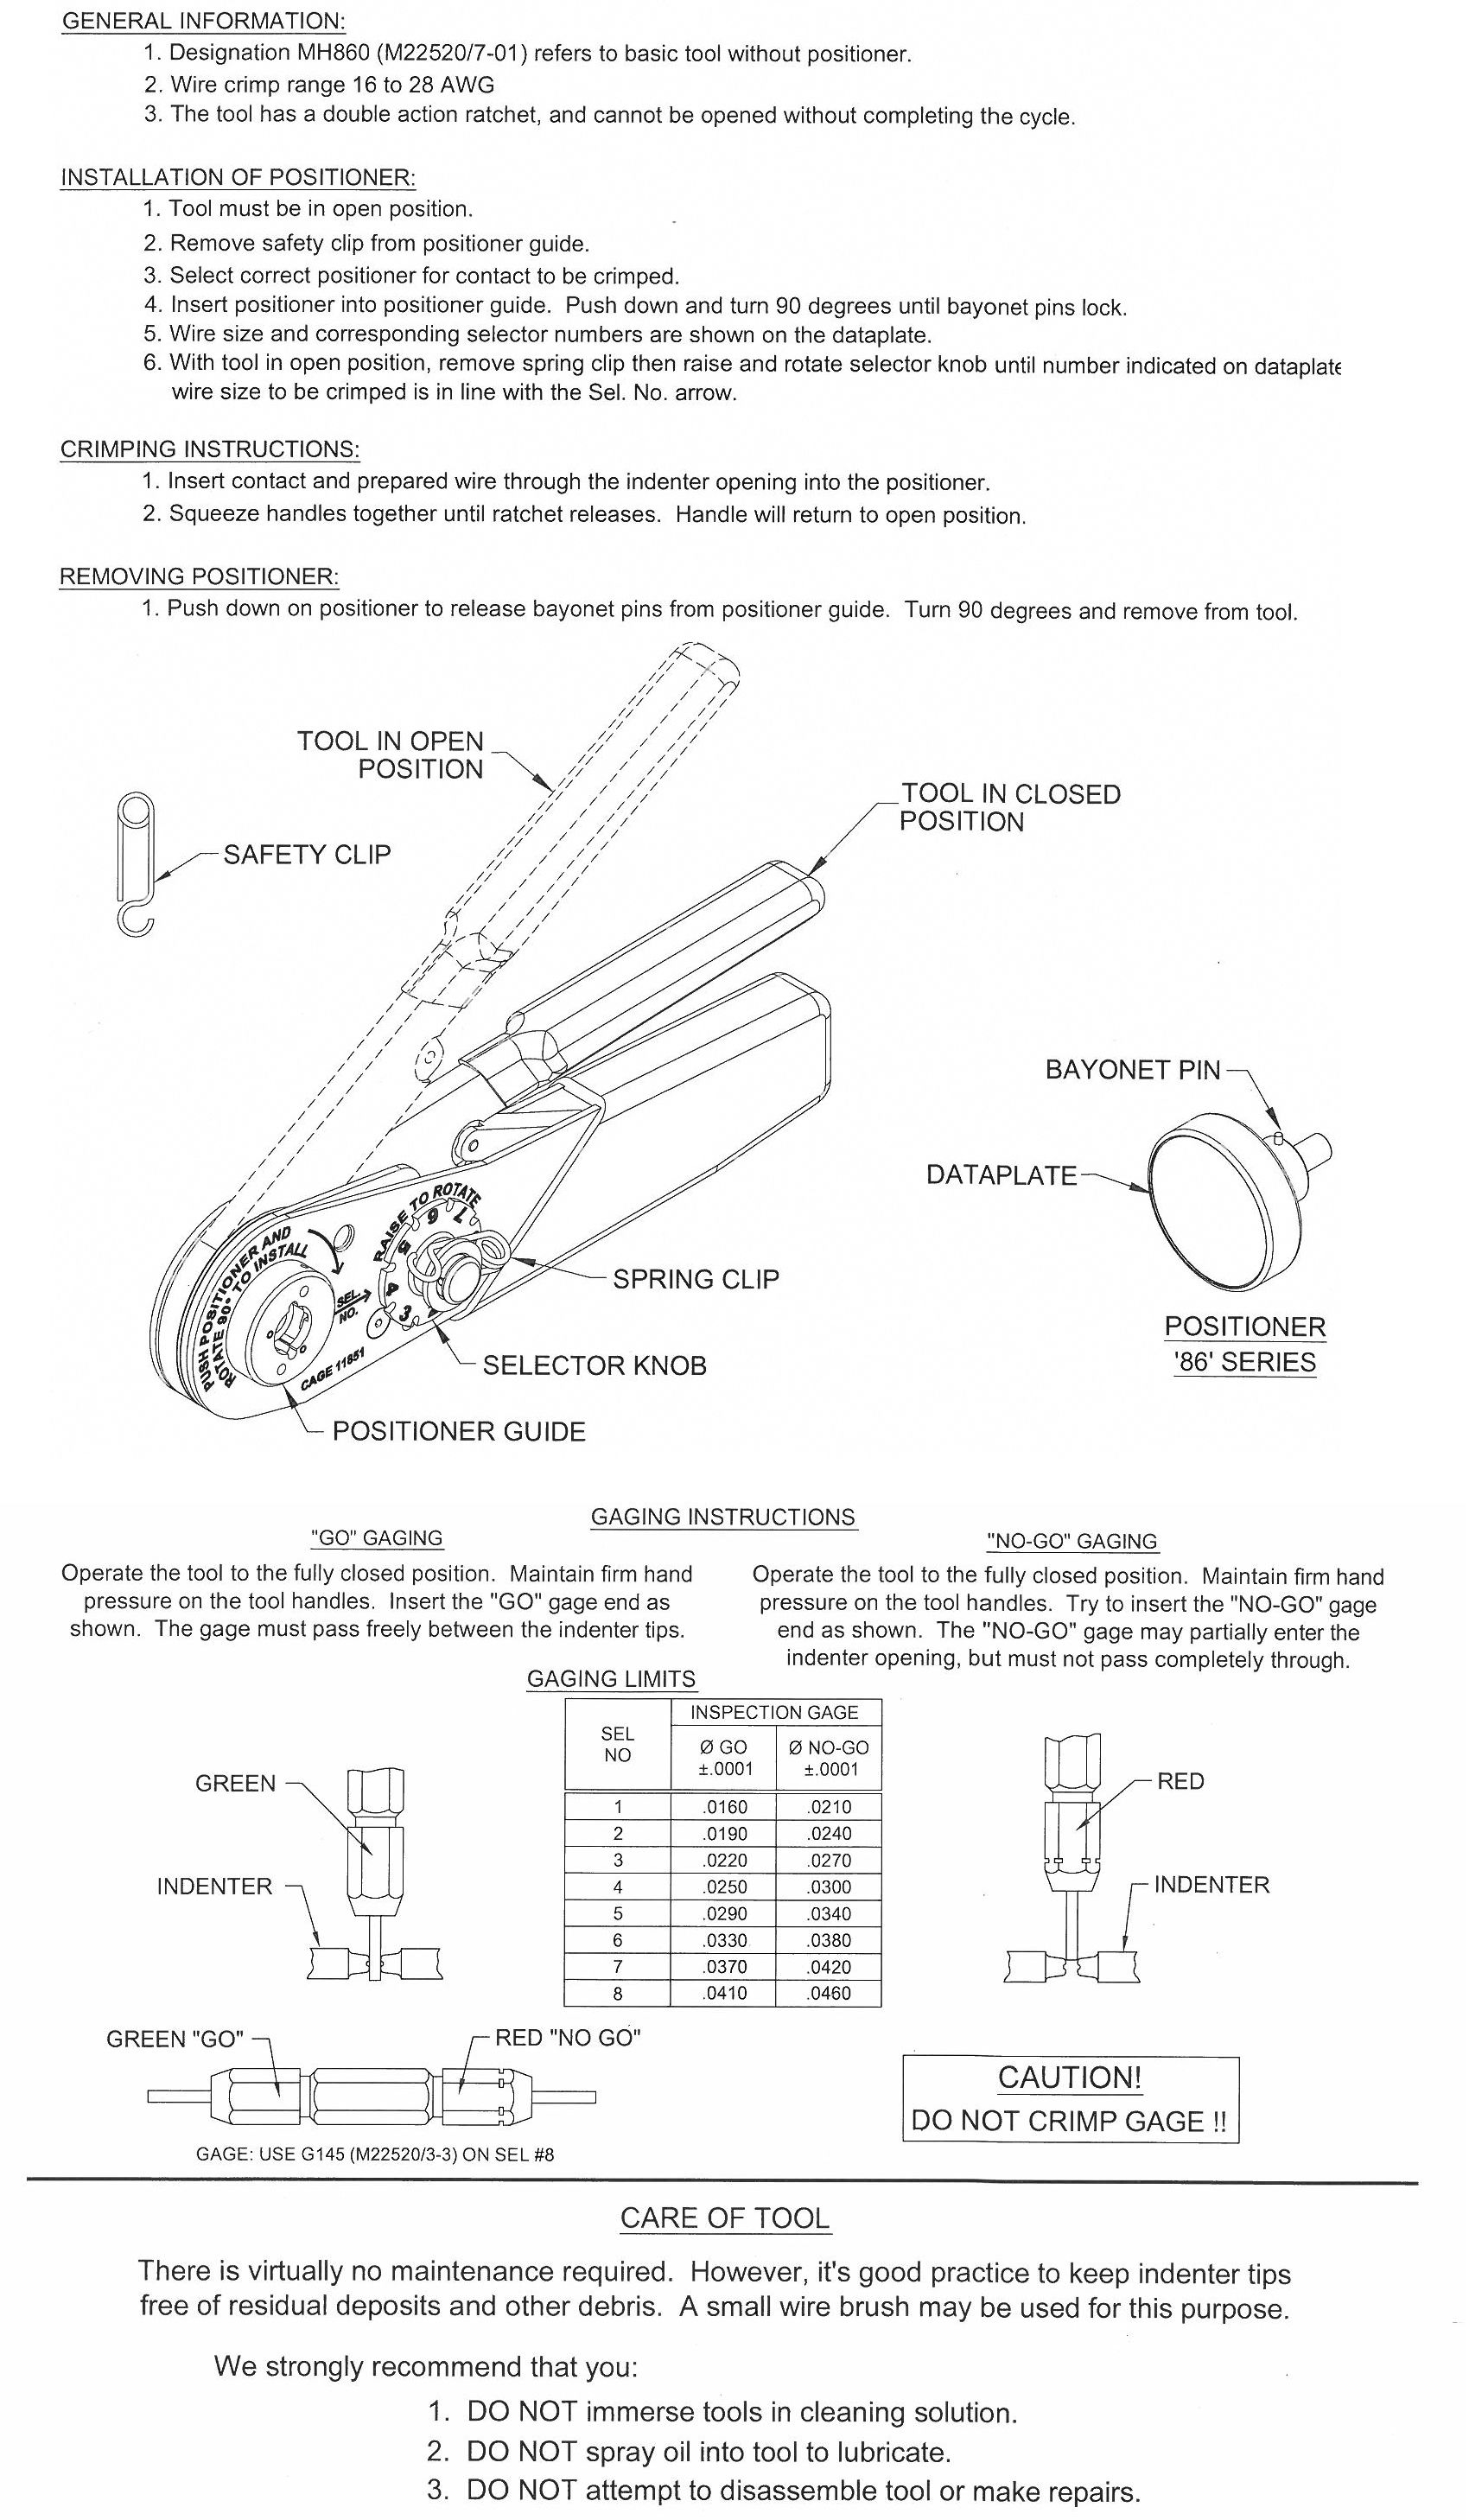 How To Use Correctly The Plier Hand Tool Crimping Tool